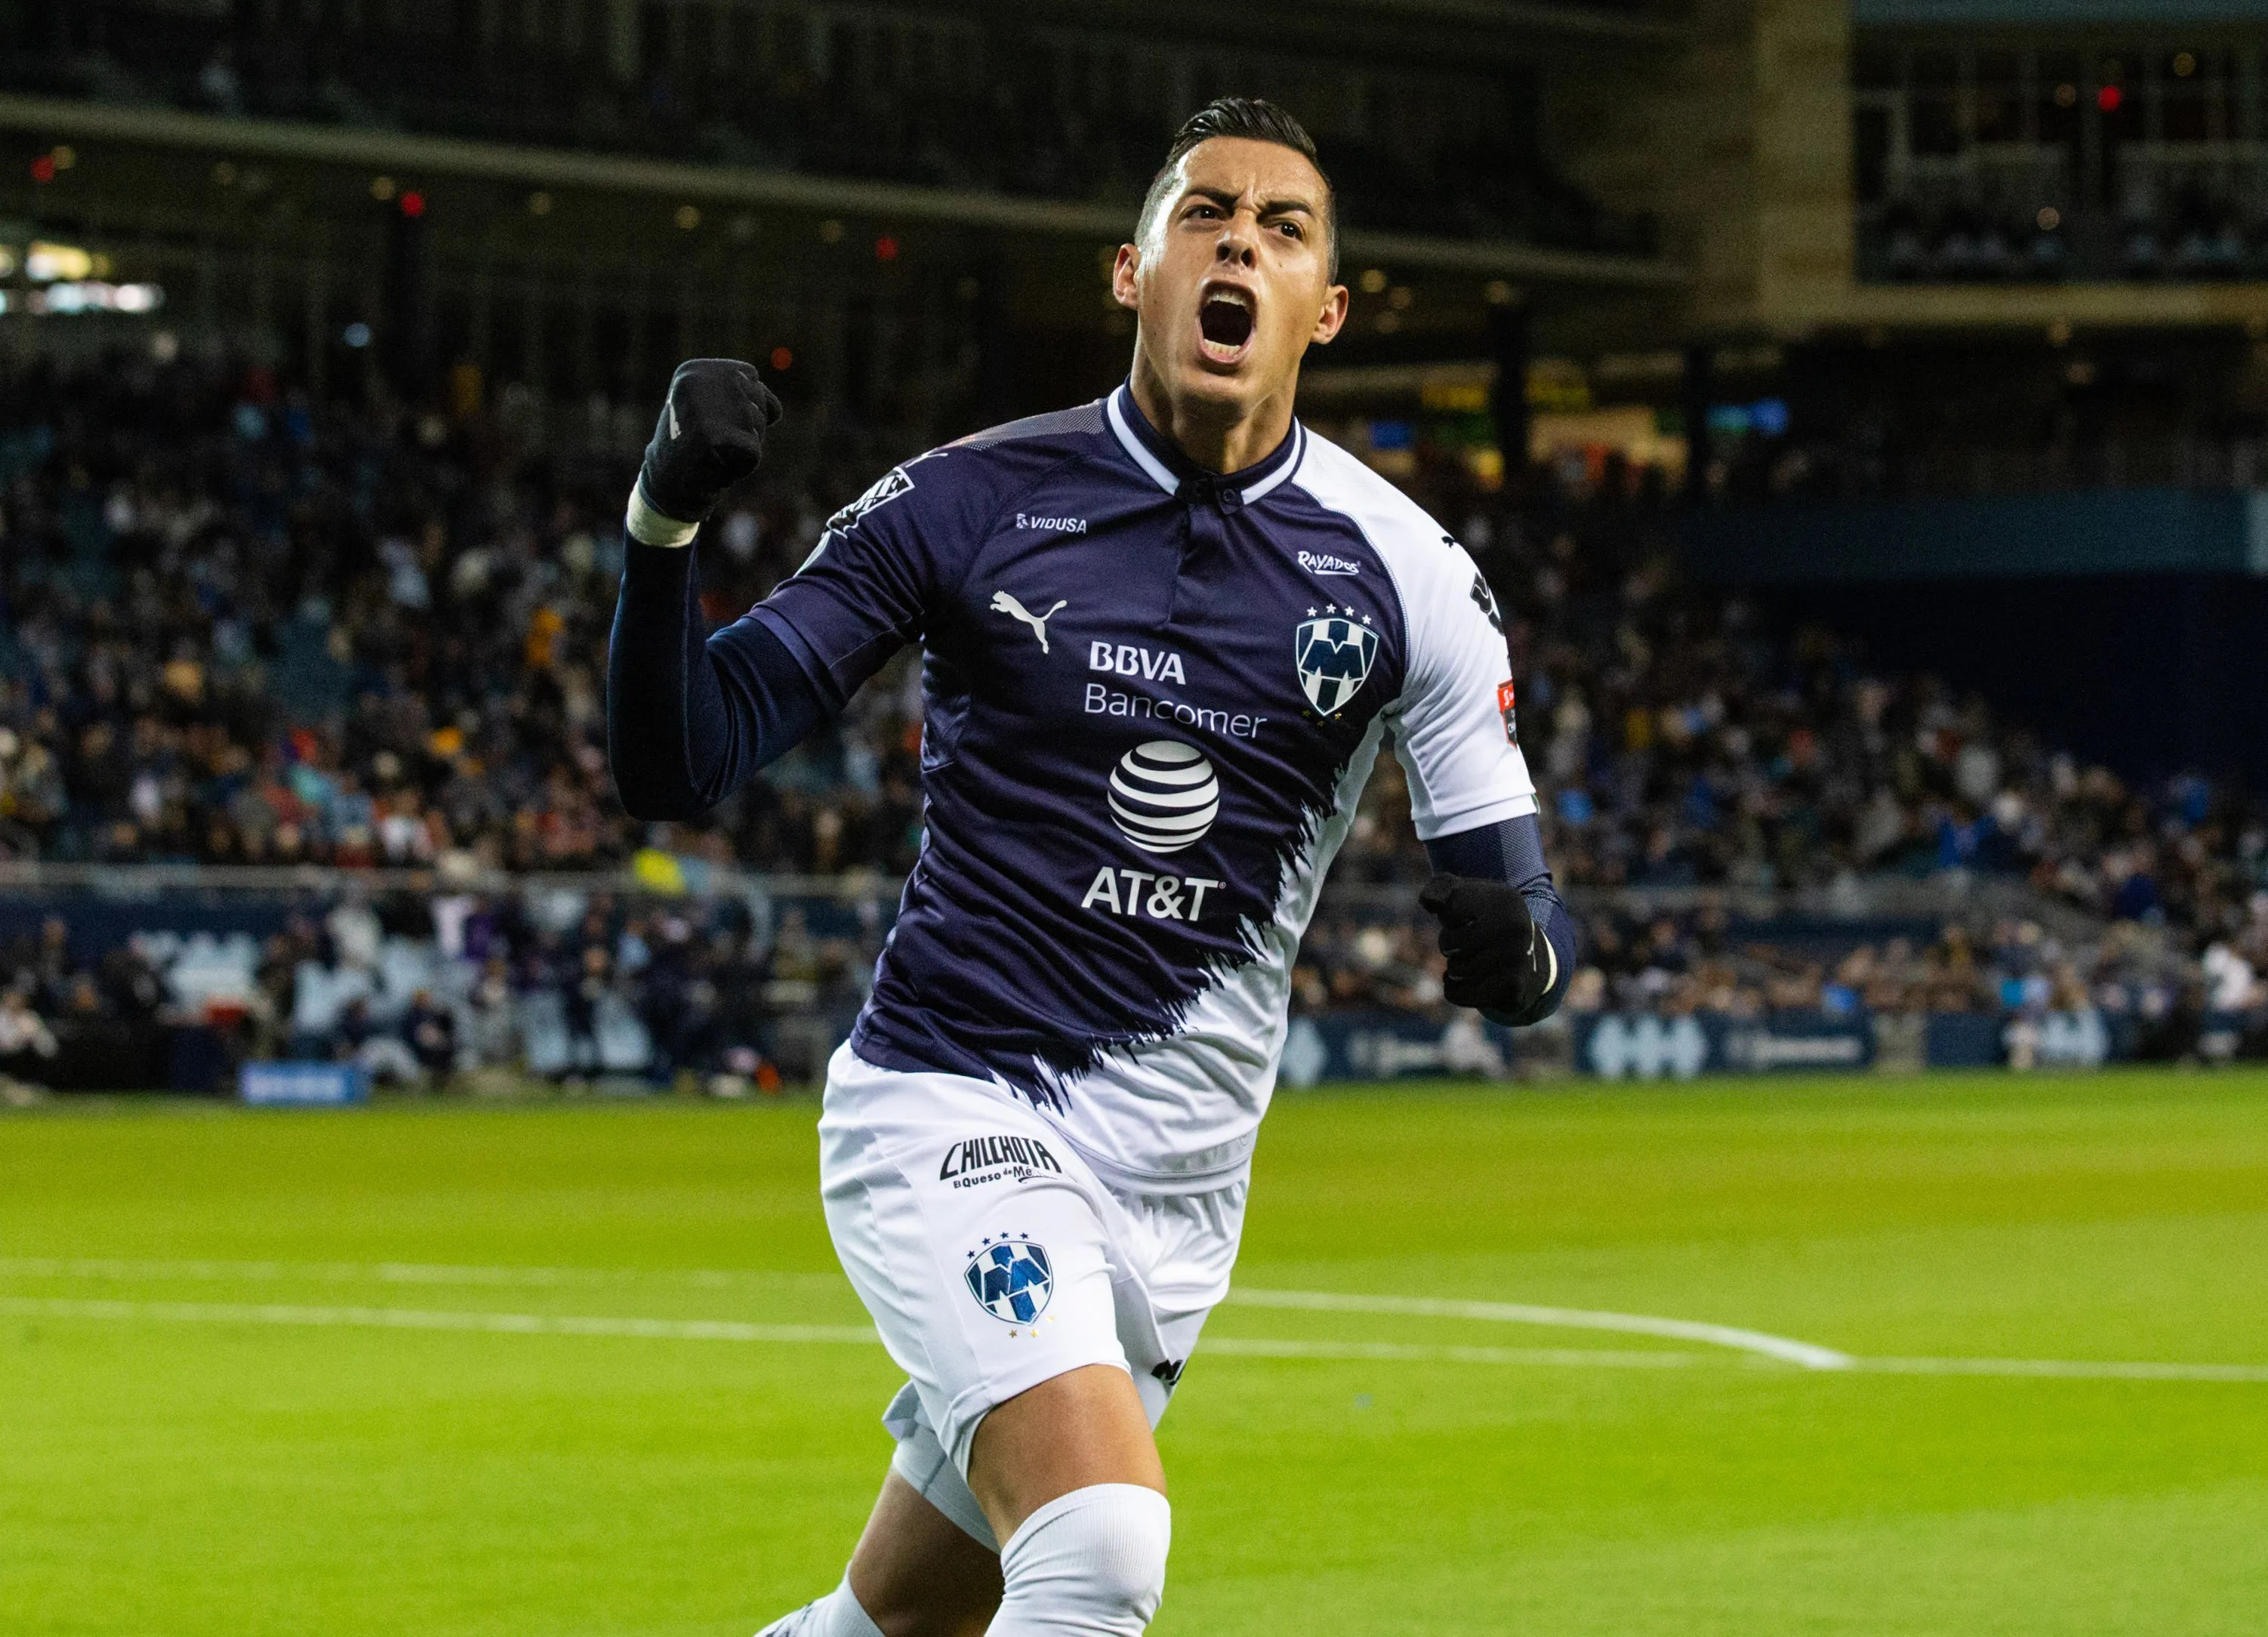 Apr 11, 2019; Kansas City, MO, USA; Monterrey forward Rogelio Funes Mori (7) celebrates after scoring against Sporting Kansas City at Children's Mercy Park. Mandatory Credit: Jay Biggerstaff-USA TODAY Sports